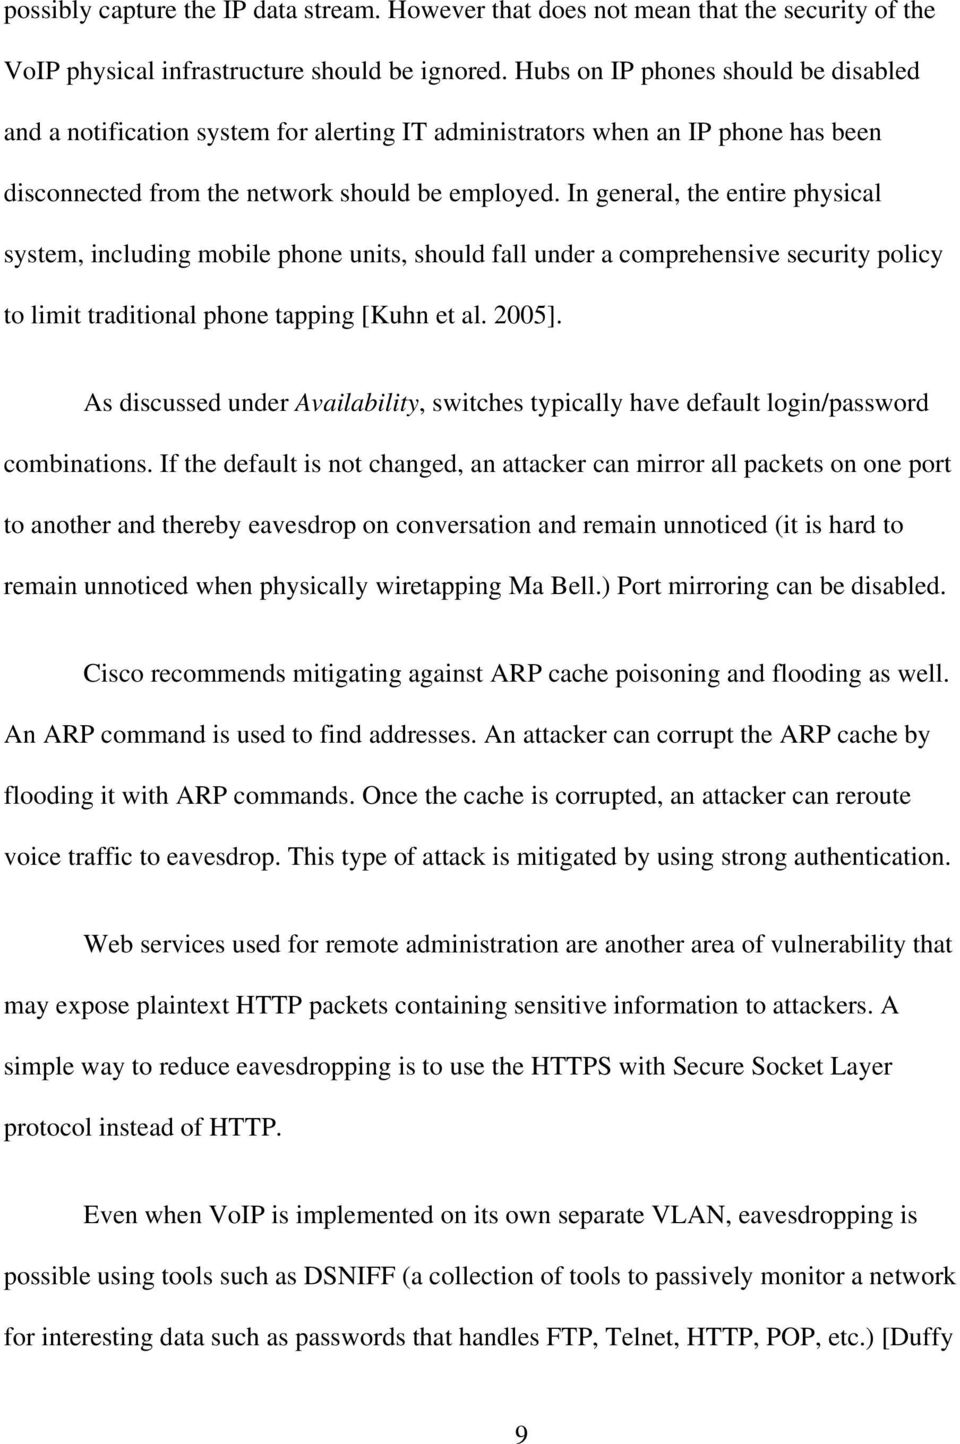 In general, the entire physical system, including mobile phone units, should fall under a comprehensive security policy to limit traditional phone tapping [Kuhn et al. 2005].